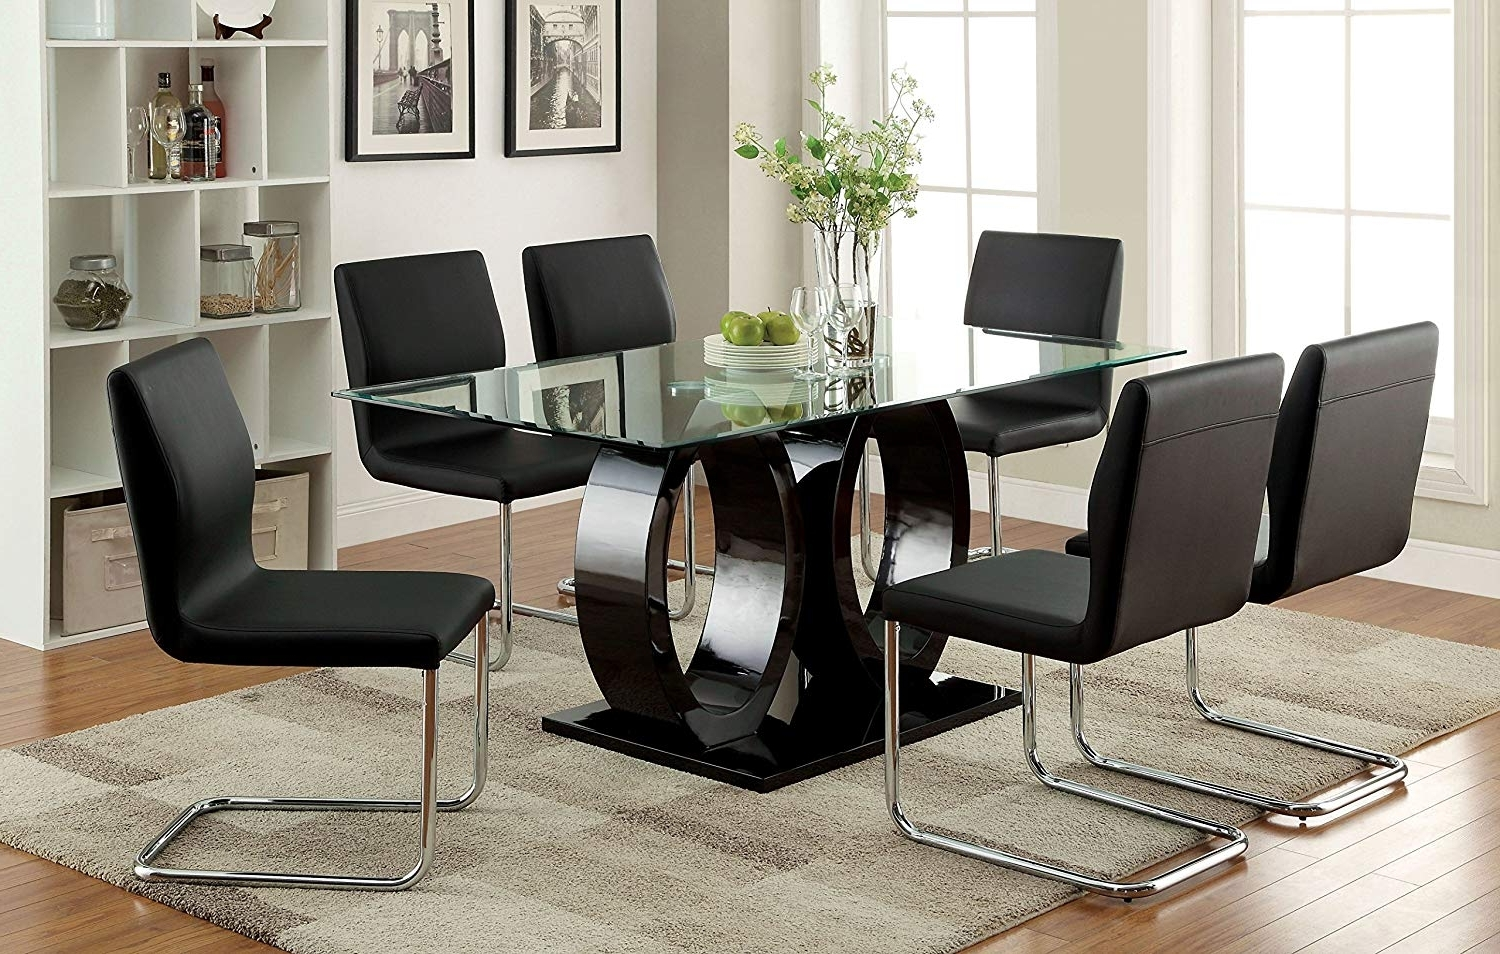 Amazon – Furniture Of America Quezon 7 Piece Glass Top Double Pertaining To Latest Dining Room Glass Tables Sets (Gallery 2 of 25)